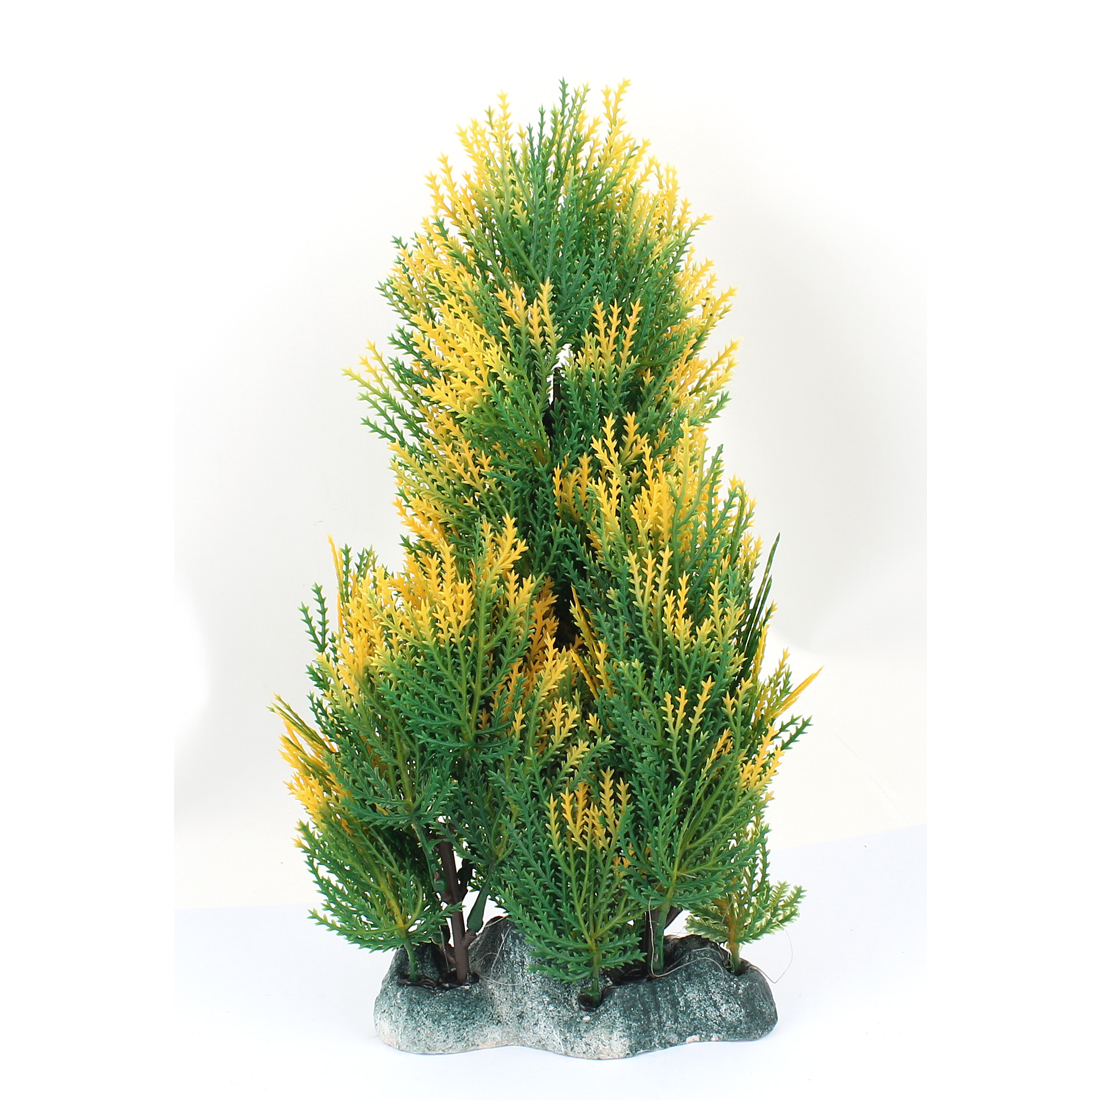 Plastic Landscape Aquascaping Underwater Grass Decor Aquarium Plant Green Yellow